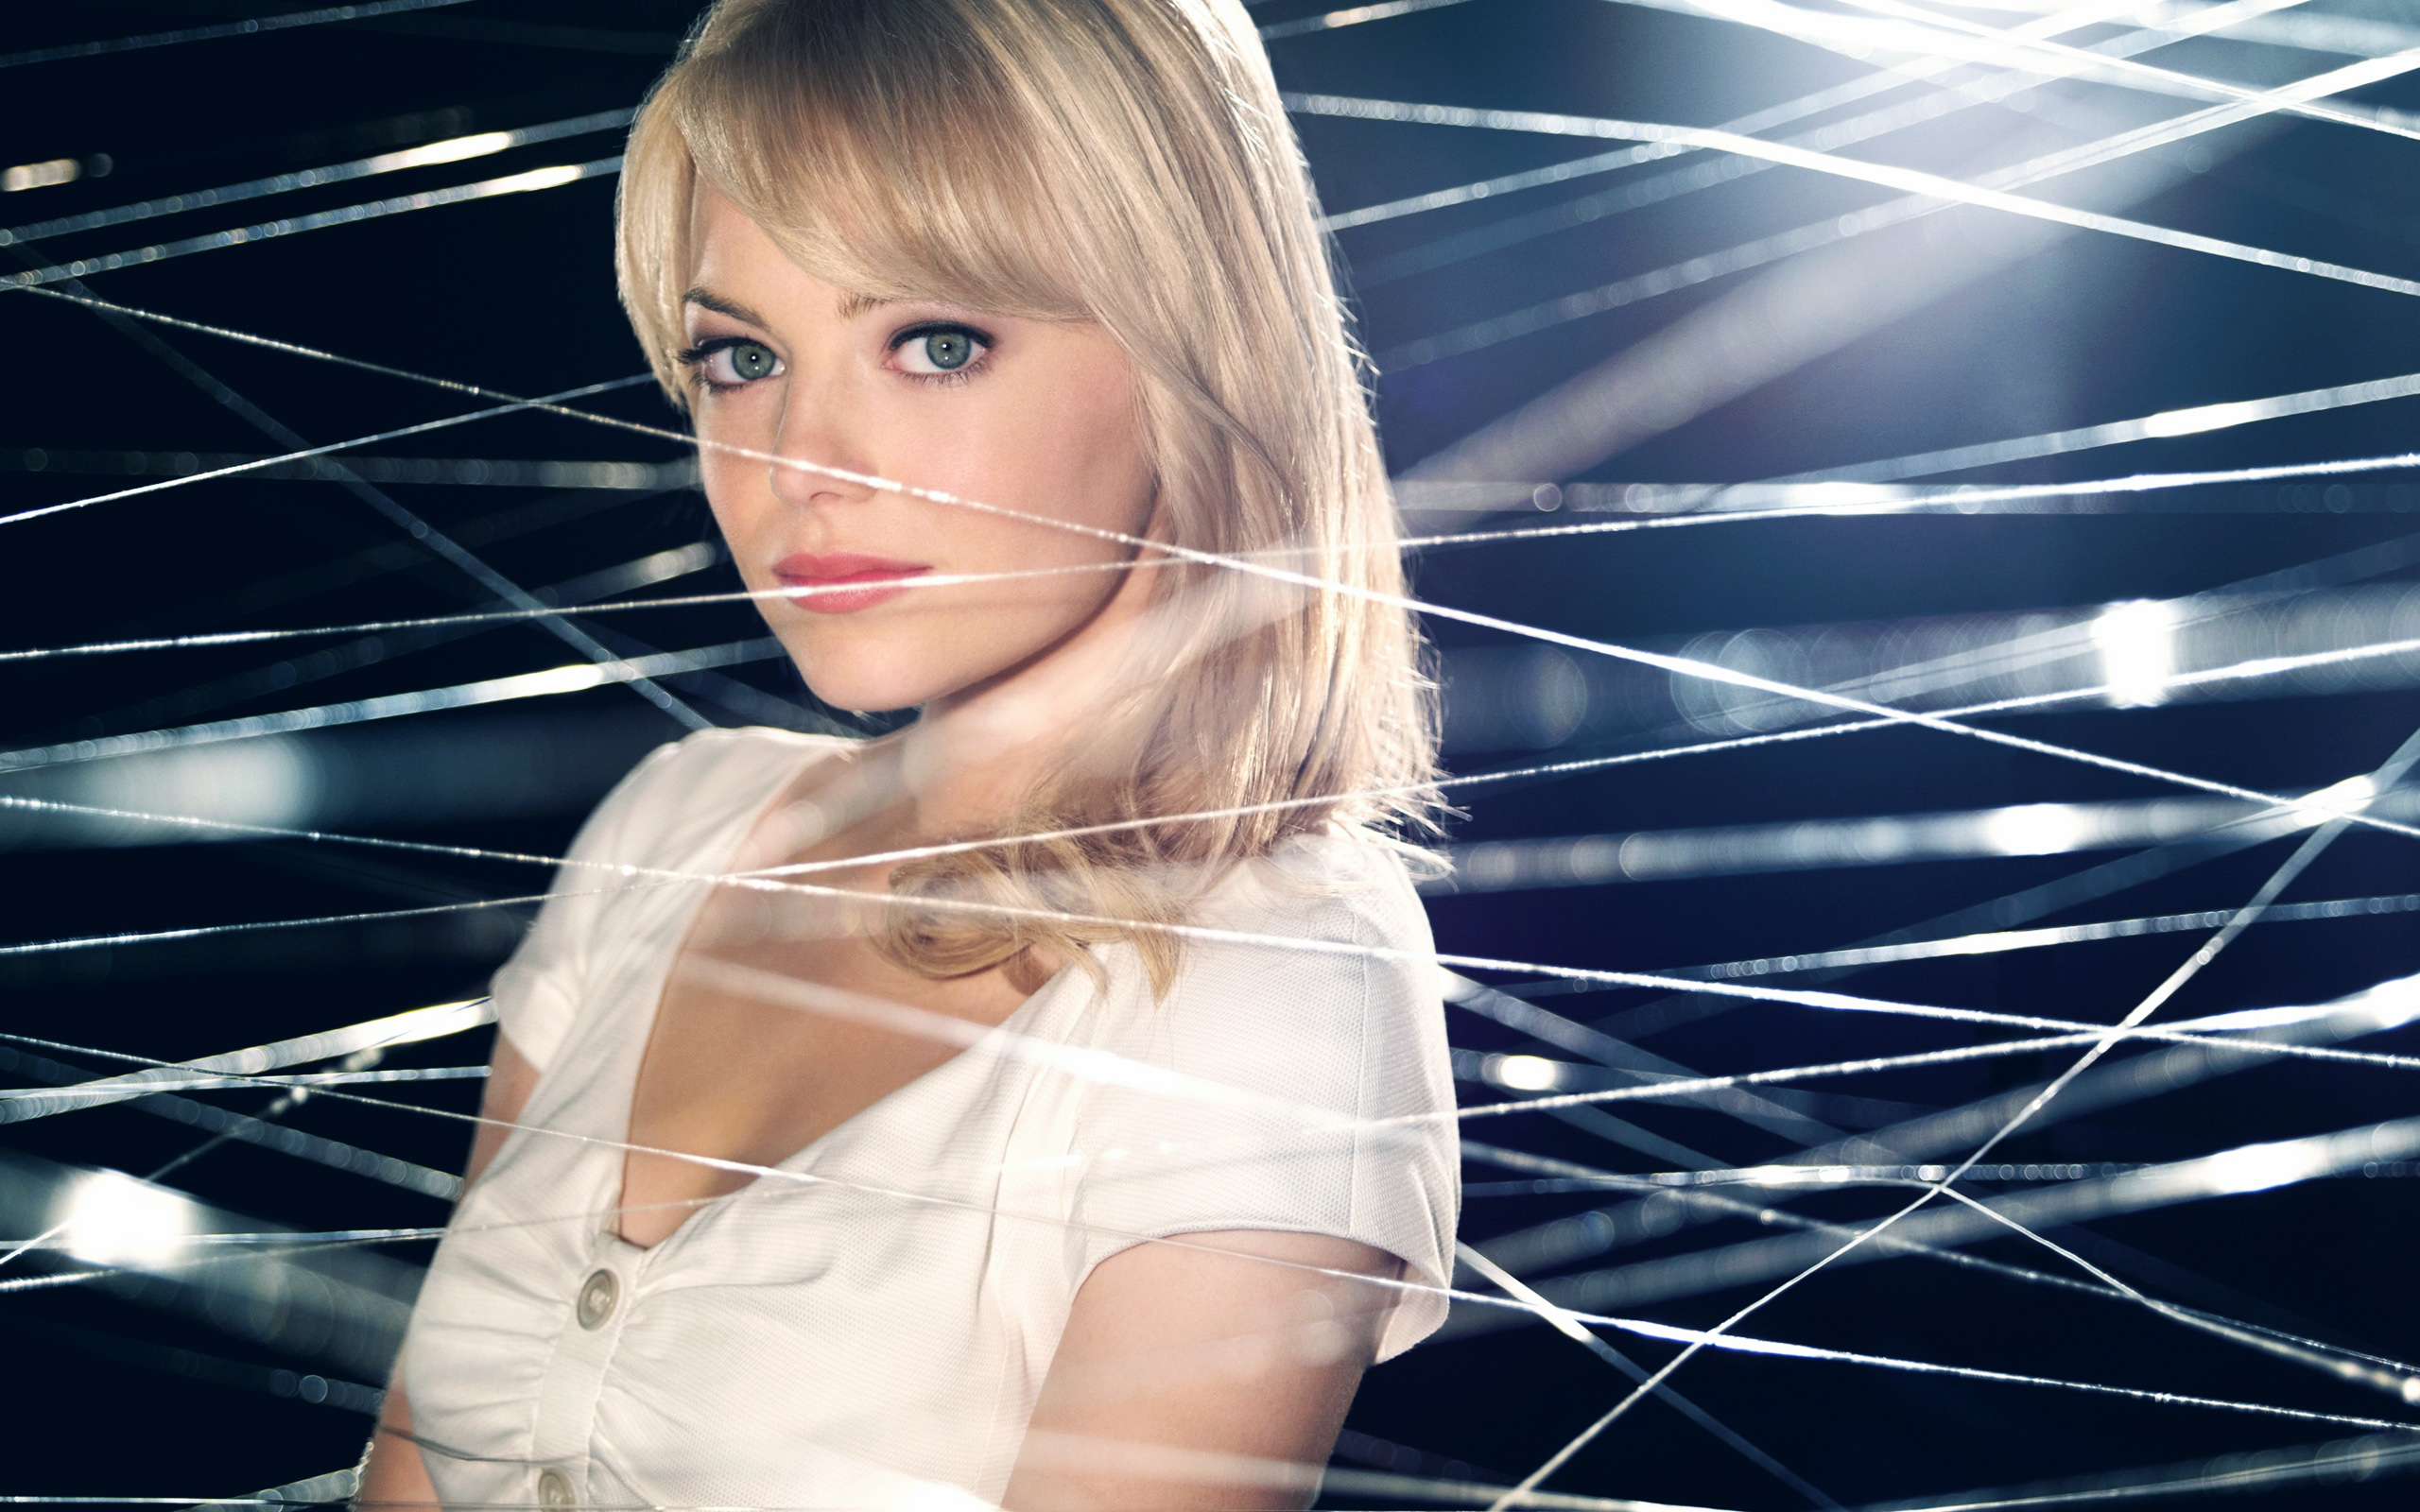 Amazing Spider Man 2 S Gwen Stacy Say S She S The Brains